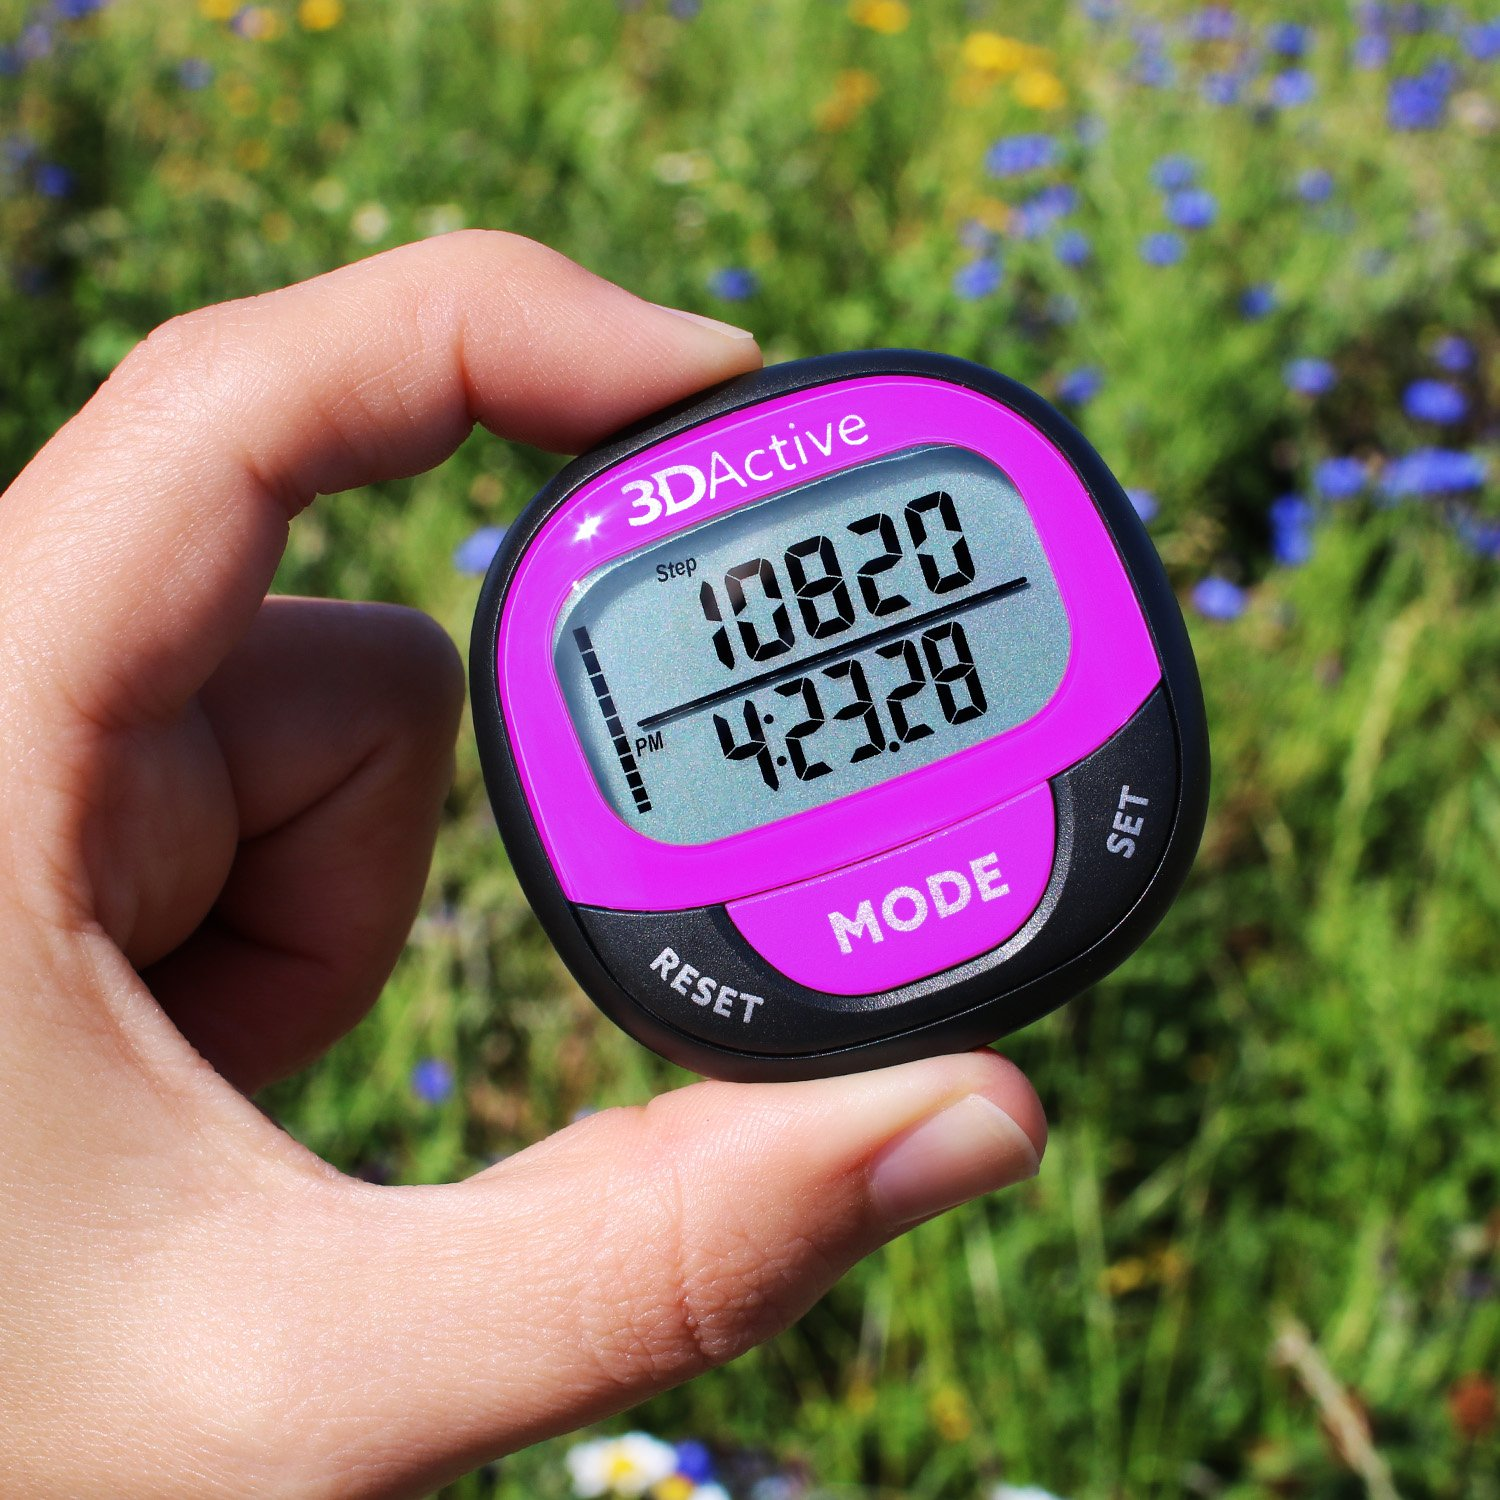 Accurate Step Counter Distance Miles//Km /& Daily Target Monitor. Calorie Counter 3DActive 3D Pedometer PDA-100  Best Pedometer for Walking with 30-Days Memory